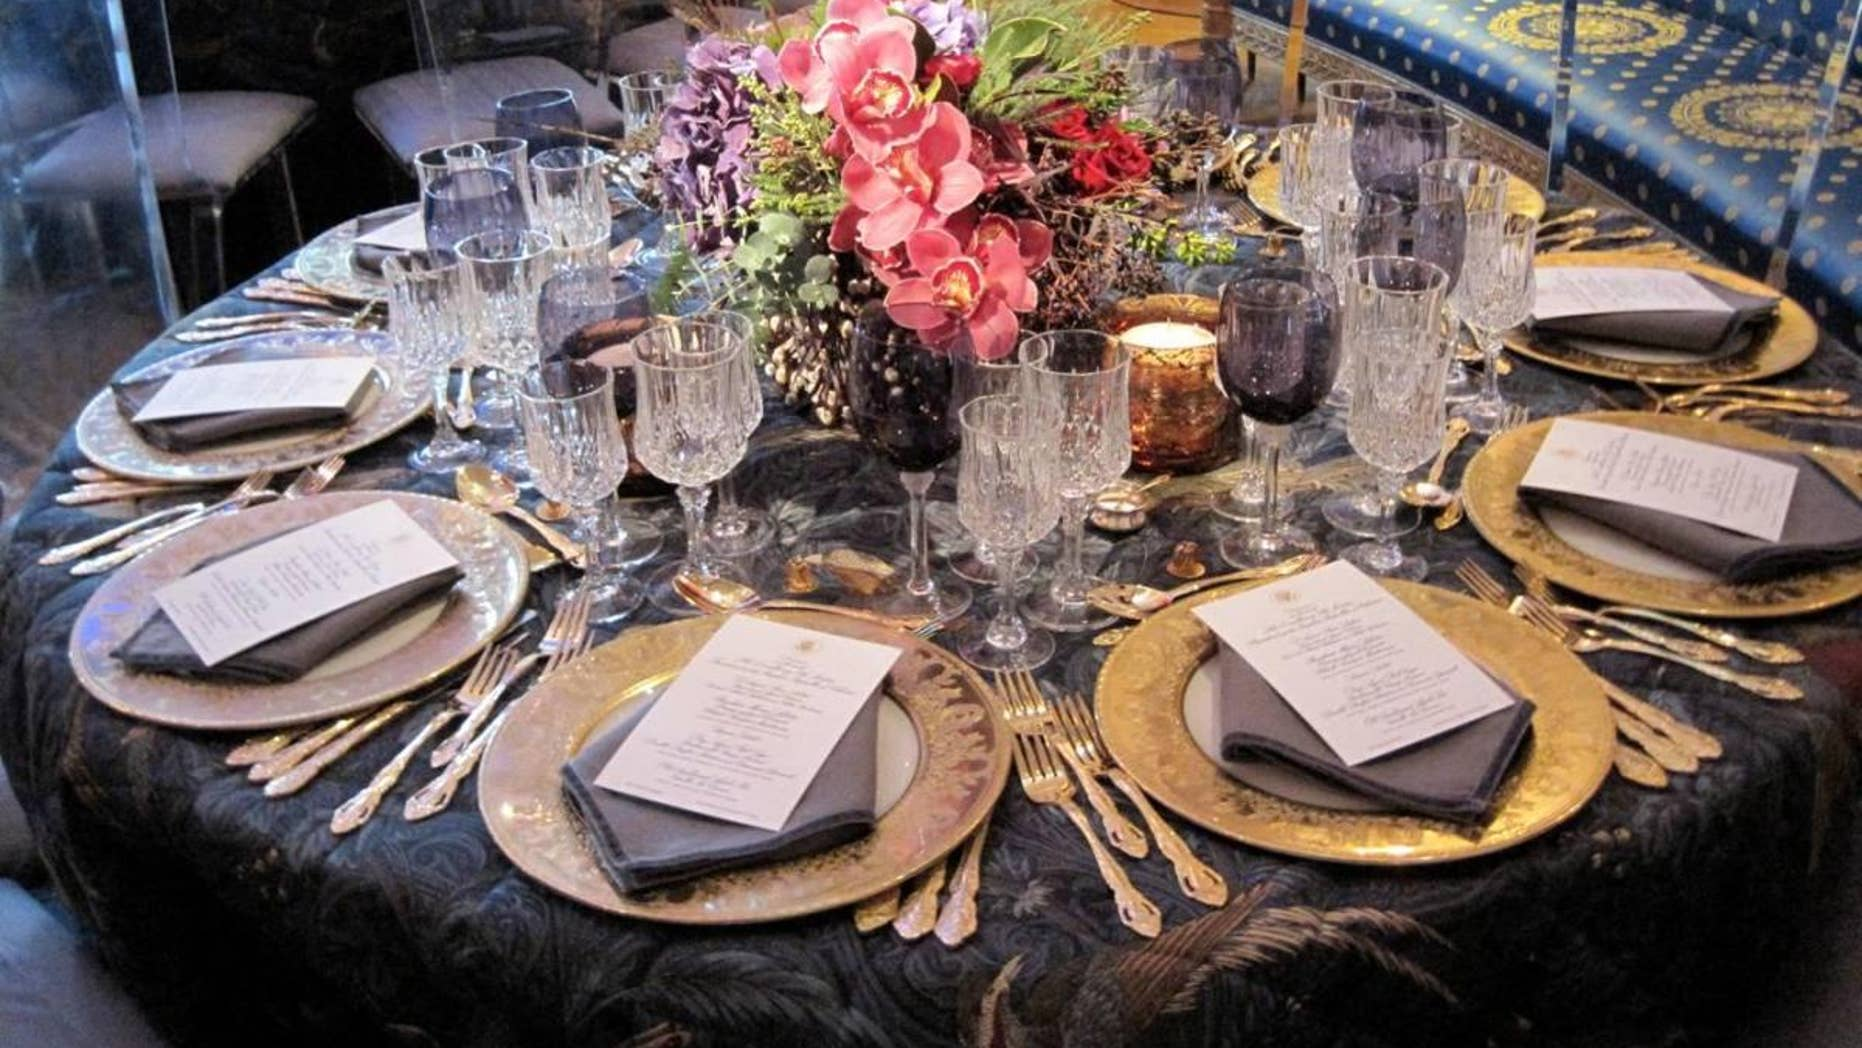 Table setting in the Blue room. (Fox News)